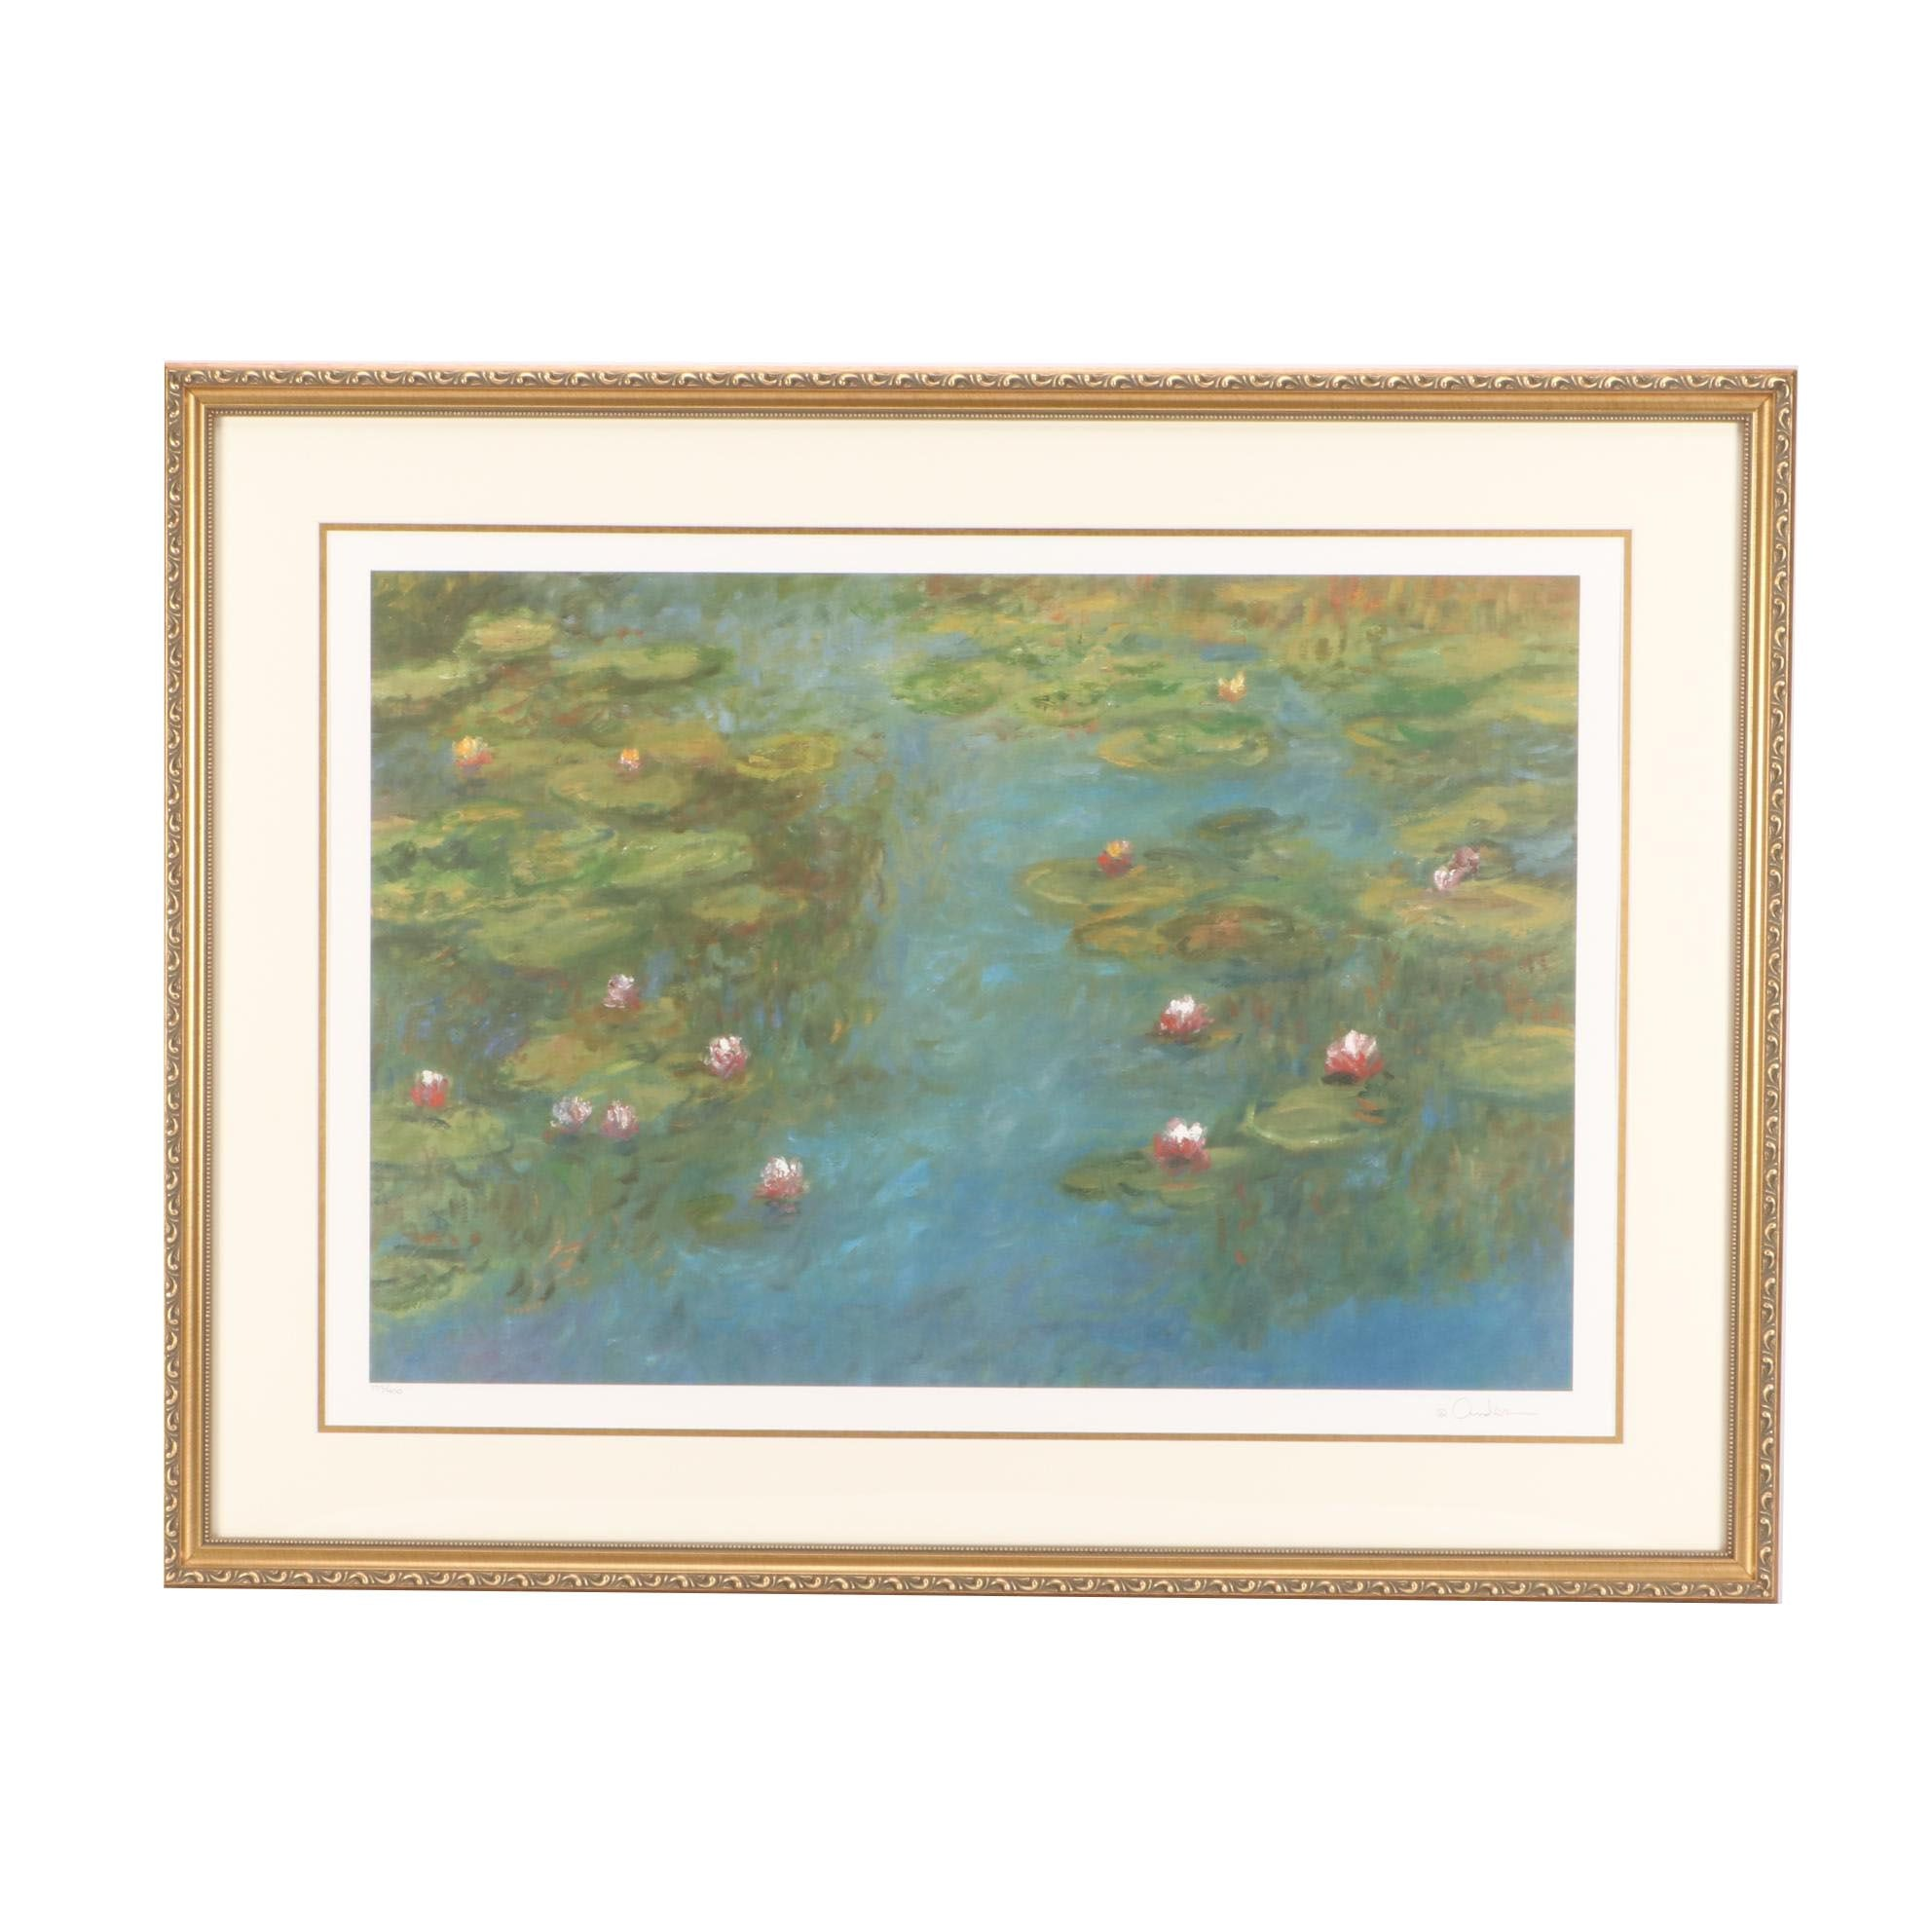 Limited Edition Offset Lithograph of Water Lilies